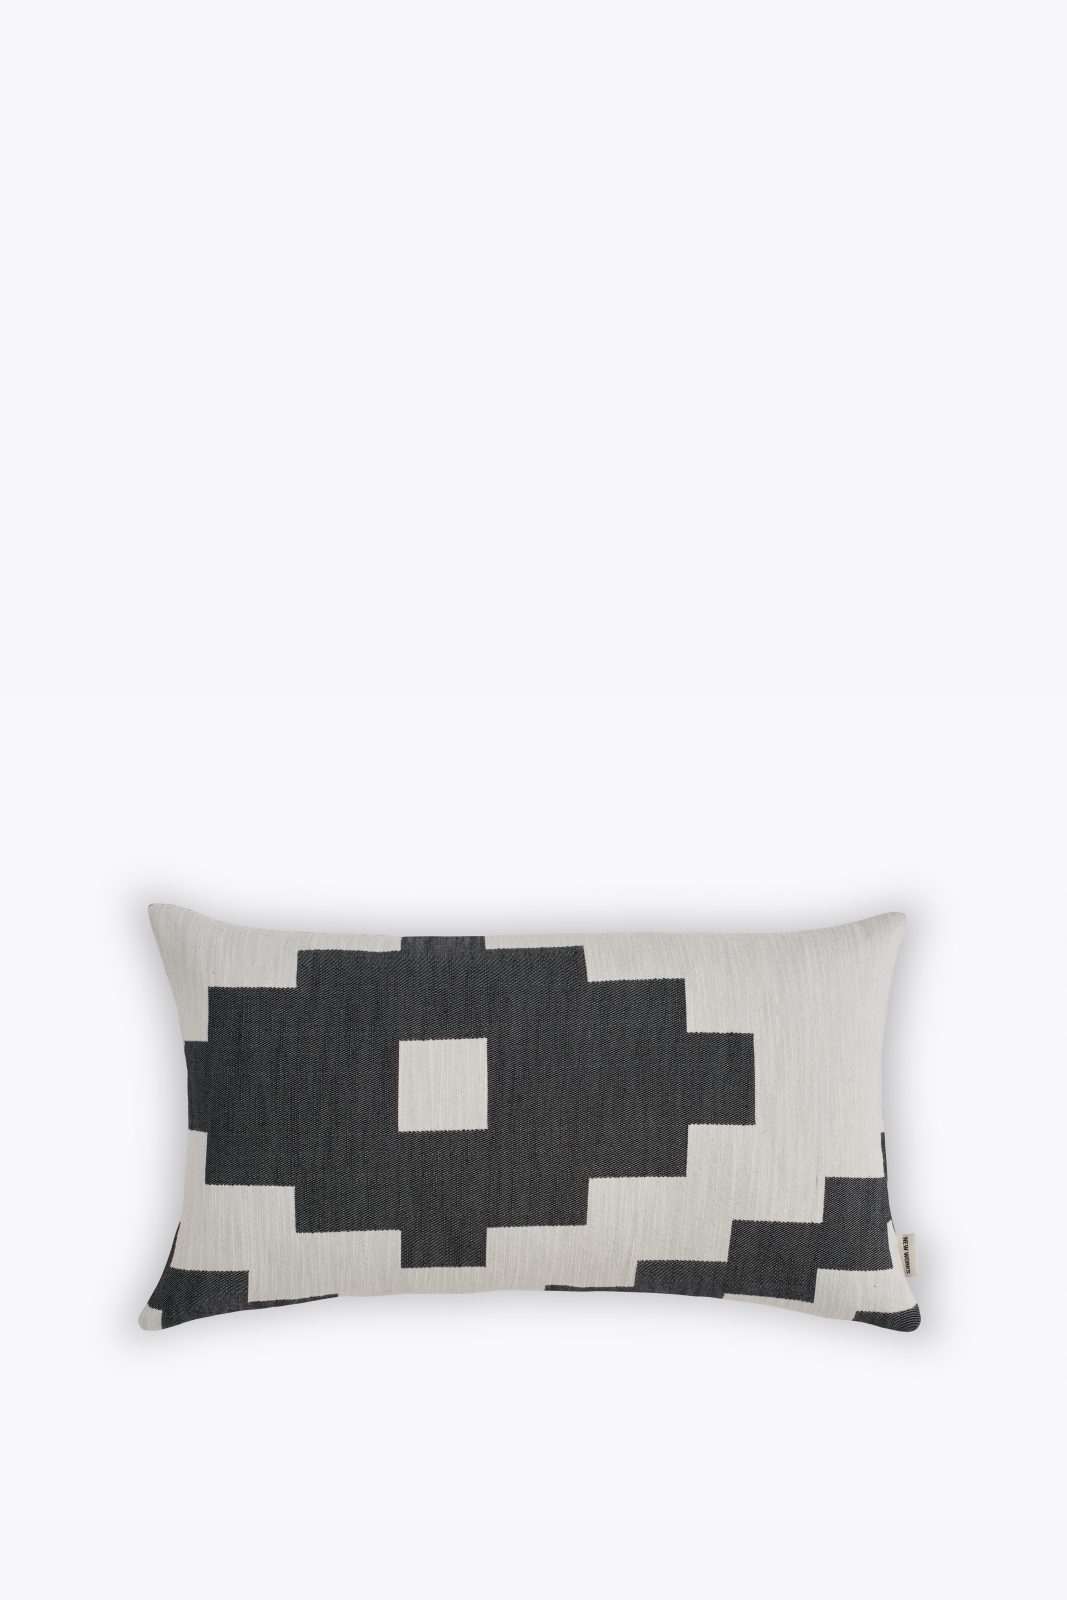 Ikat Rectangular Cushion Woven Black